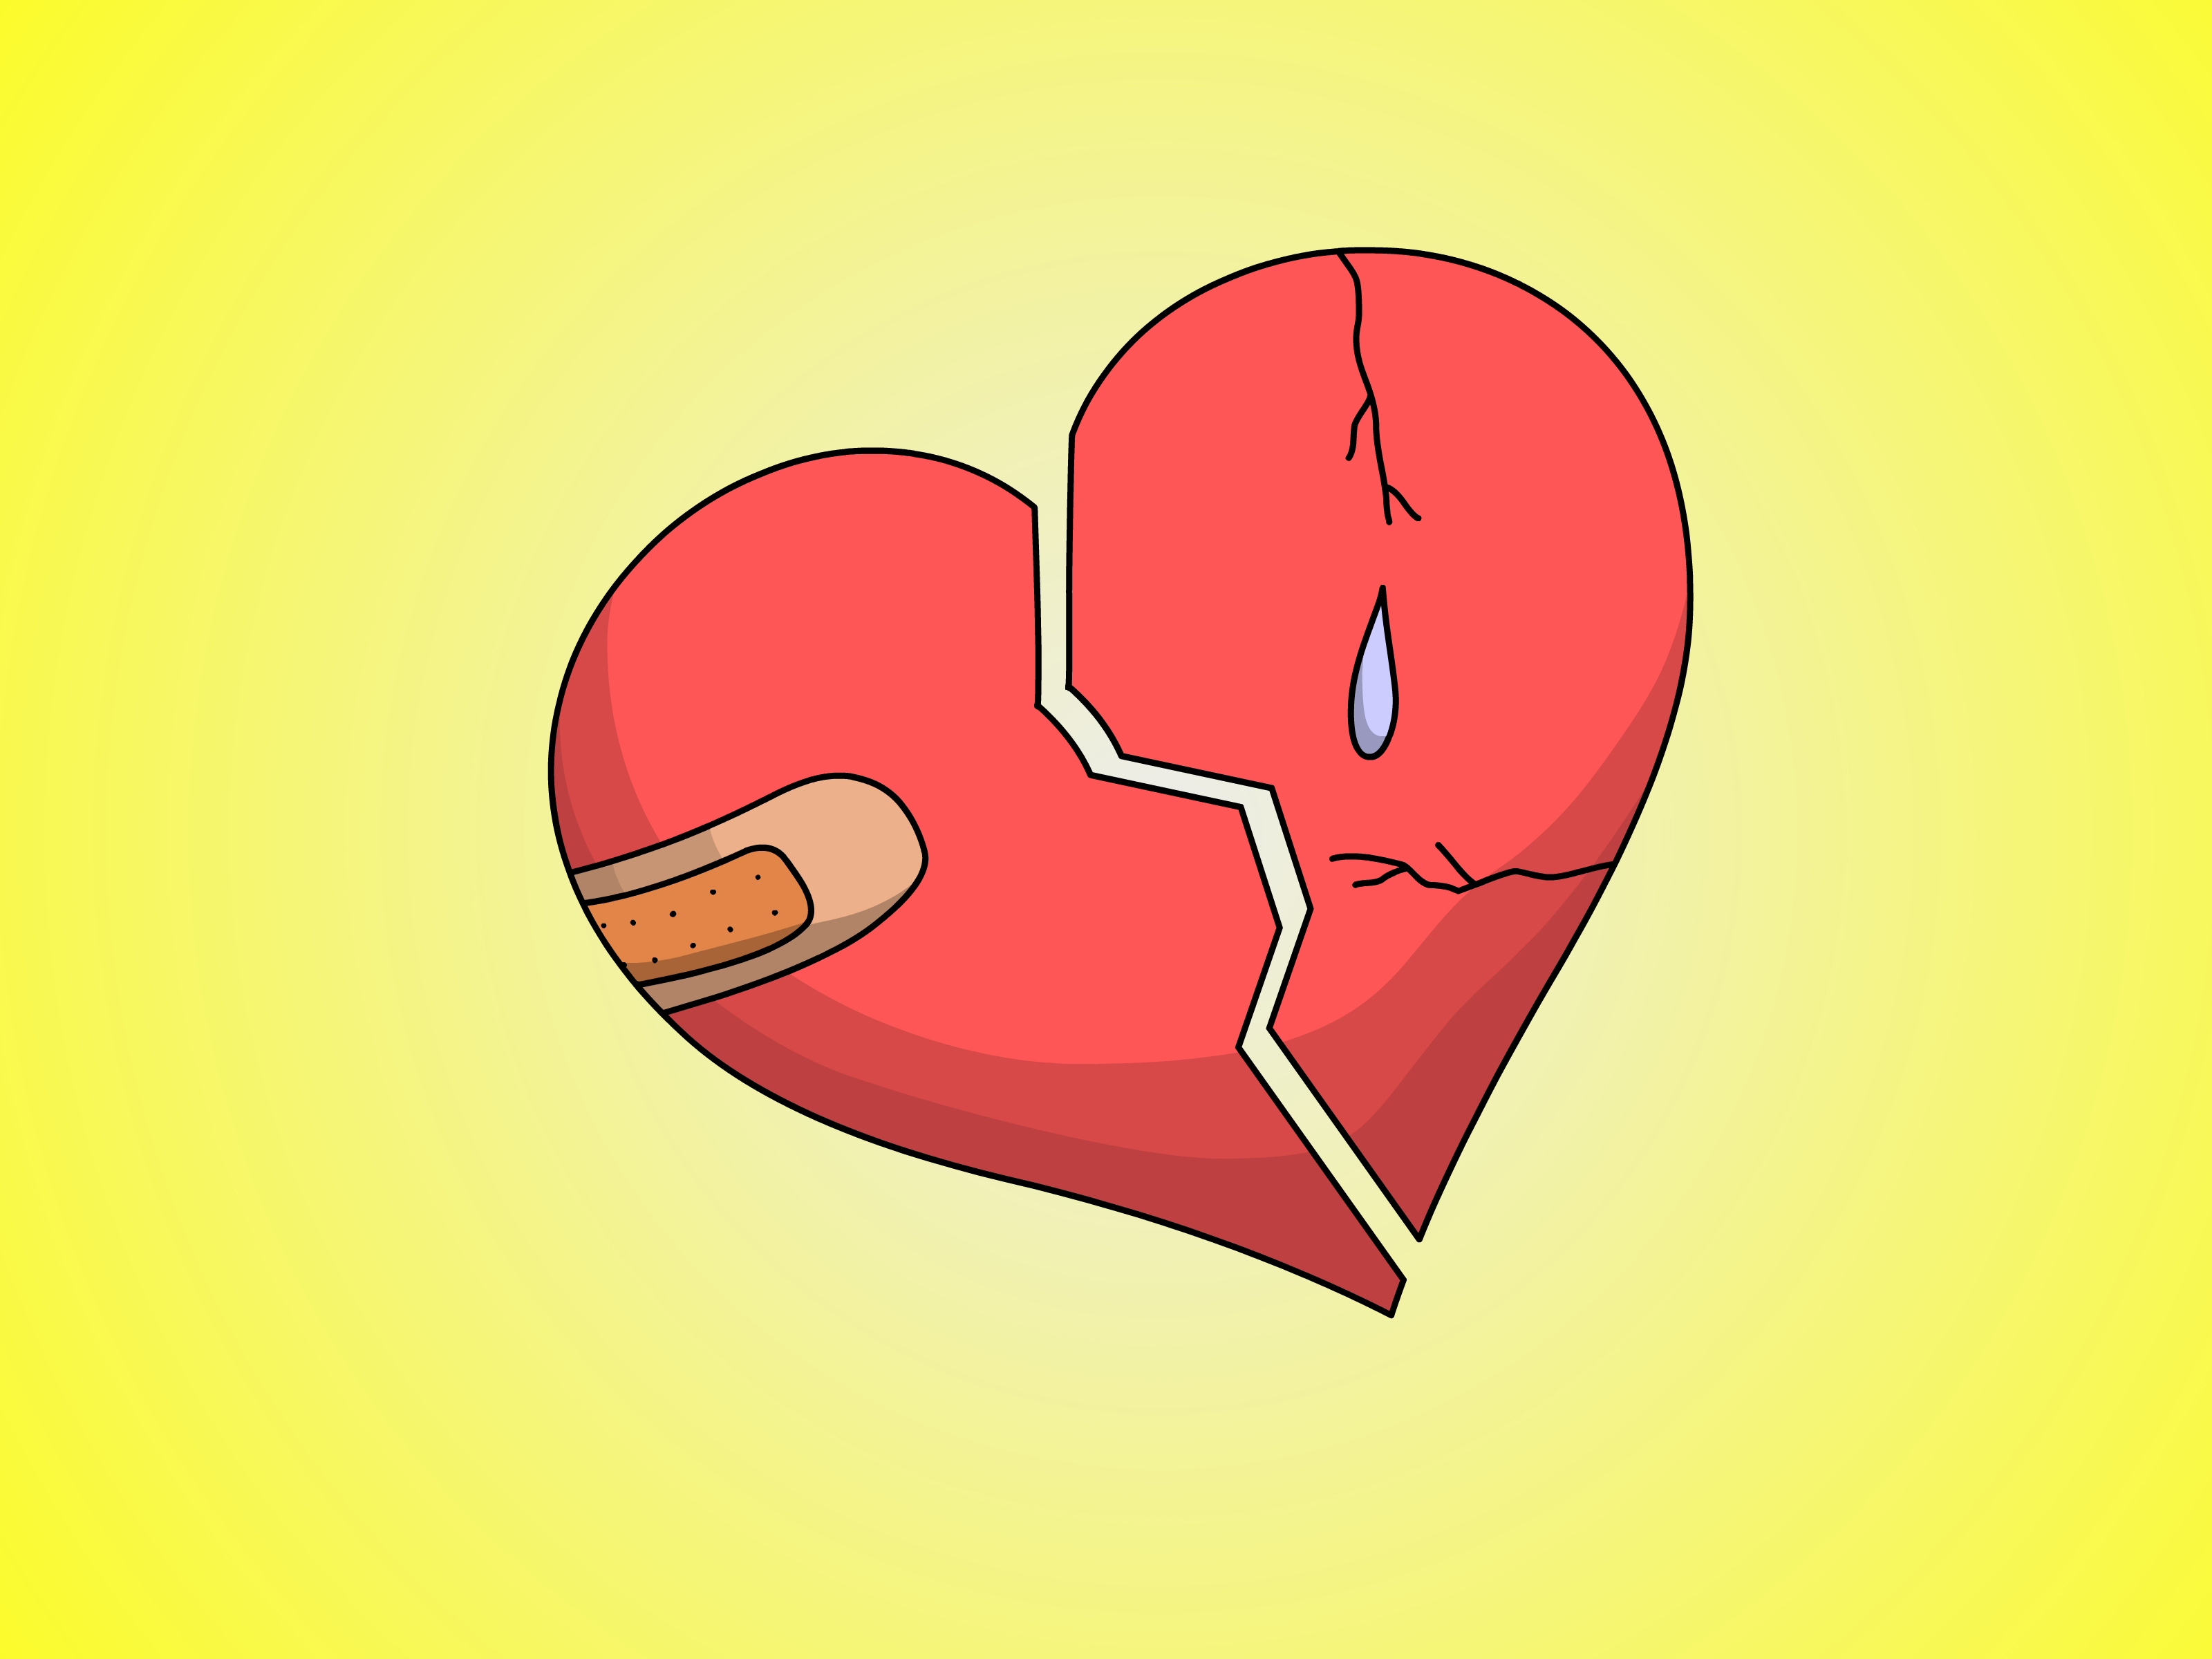 Broken Heart Iphone Emoji Wallpaper